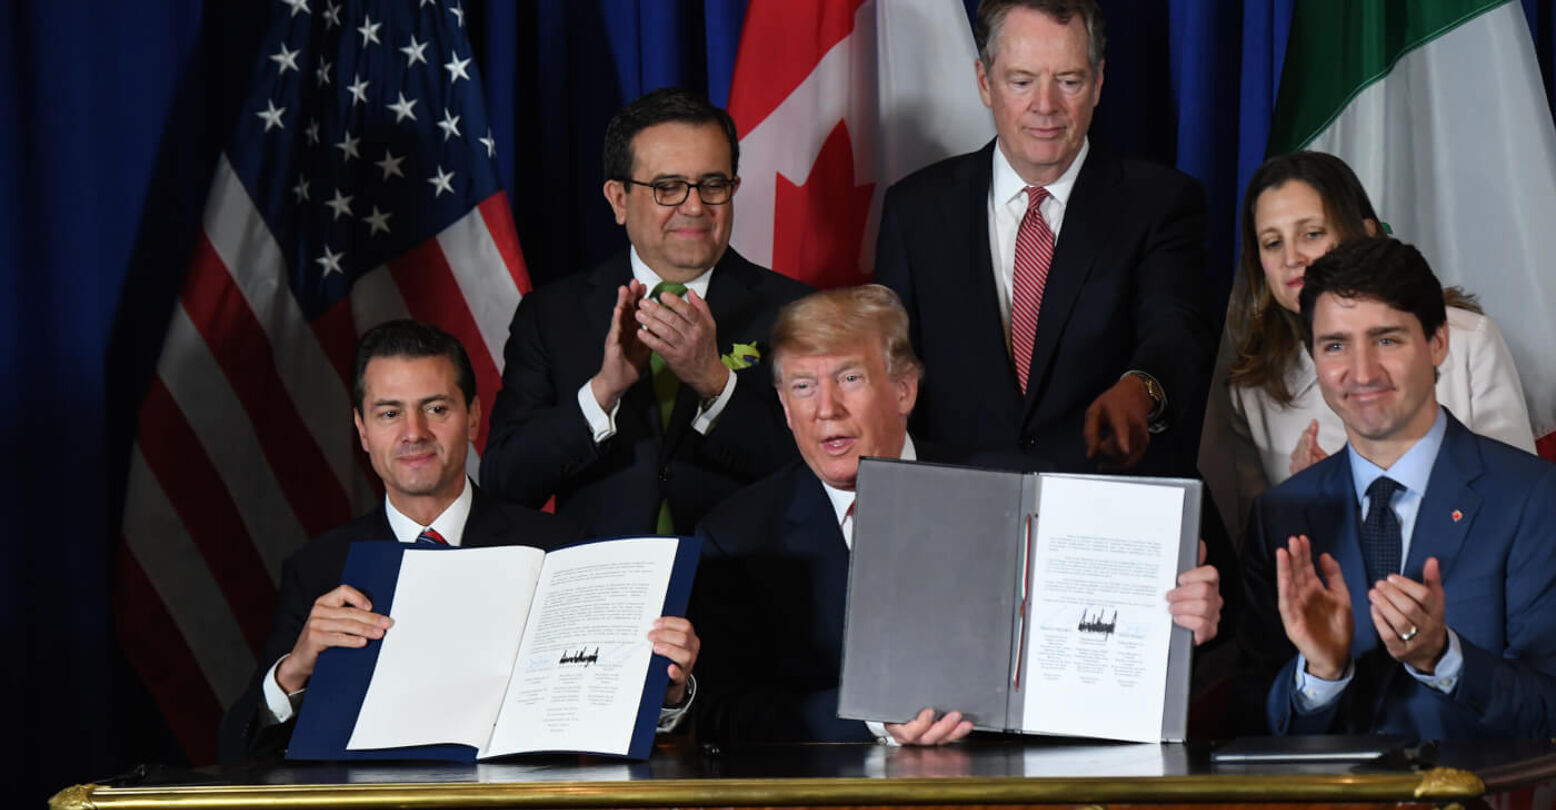 TOPSHOT - Mexico's President Enrique Pena Nieto (L) US President Donald Trump (C) and Canadian Prime Minister Justin Trudeau, are pictured after signing a new free trade agreement in Buenos Aires, on November 30, 2018, on the sidelines of the G20 Leaders' Summit. - The revamped accord, called the US-Mexico-Canada Agreement (USMCA), looks a lot like the one it replaces. But enough has been tweaked for Trump to declare victory on behalf of the US workers he claims were cheated by NAFTA. (Photo by Martin BERNETTI / AFP) (Photo credit should read MARTIN BERNETTI/AFP/Getty Images)